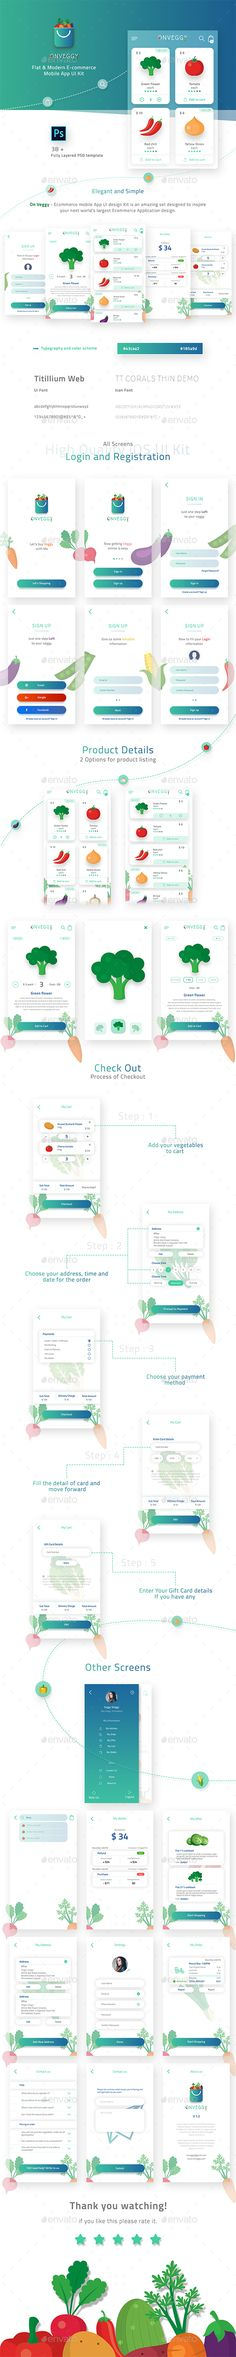 Buy On Veggy - Multipurpose E-commerce App UI Kit by Potenzaglobalsolutions on GraphicRiver. On Veggy – Ecommerce mobile App UI design Kit is an amazing set designed to inspire your next world's largest E-comme. Module Design, App Ui Design, Mobile App Design, Interface Design, Flat Design, User Interface, Ui Kit, Mobile App Ui, Application Design